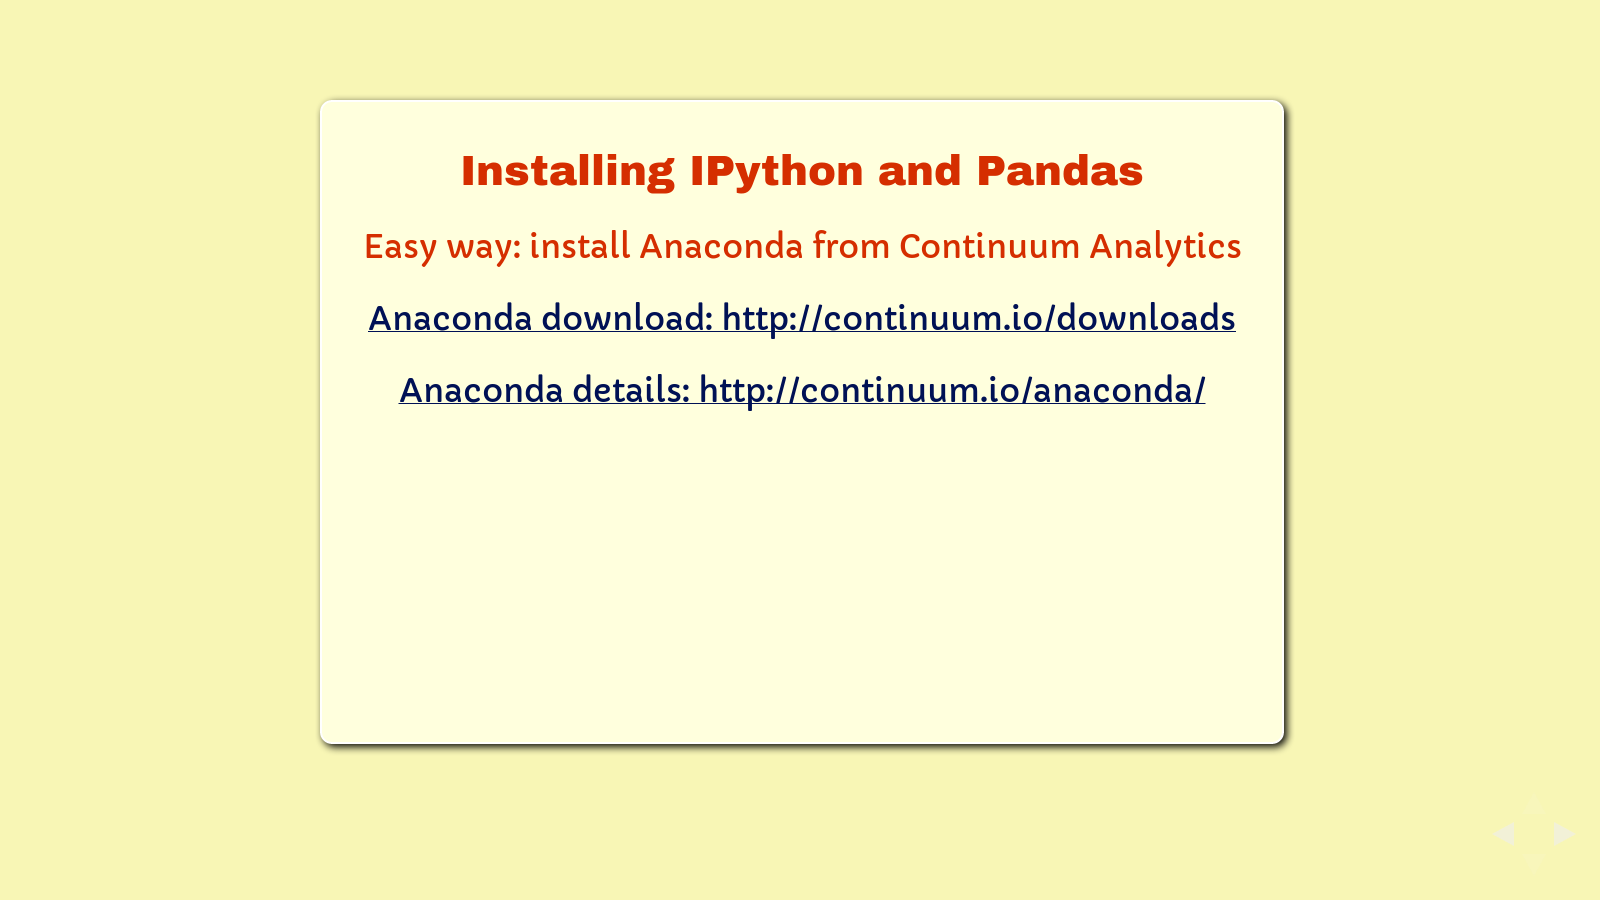 Slide: Installing IPython and Pandas